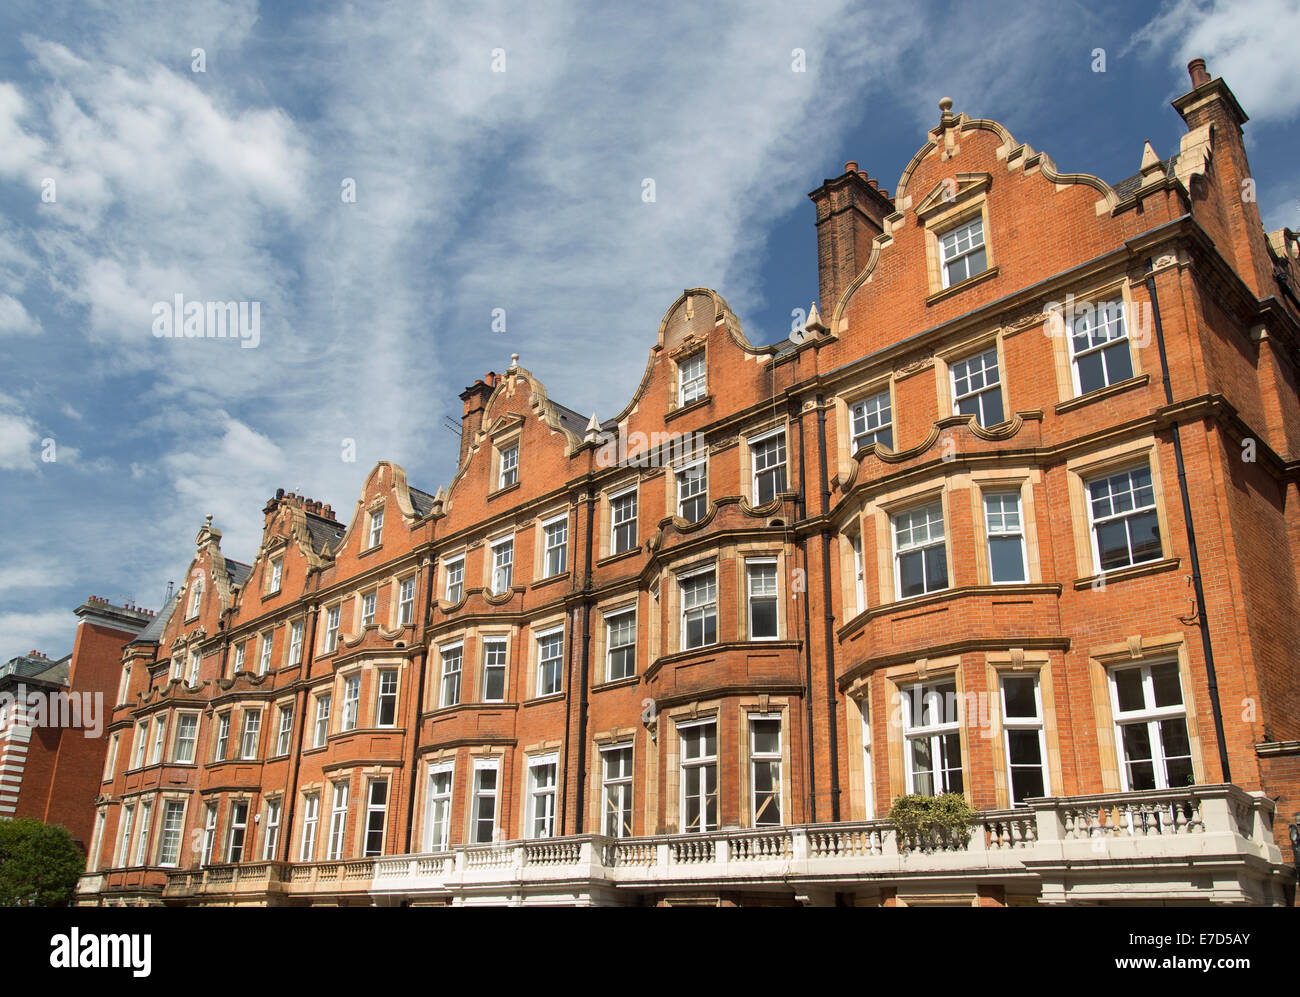 Red Brick Apartments Stock Photos & Red Brick Apartments Stock ...